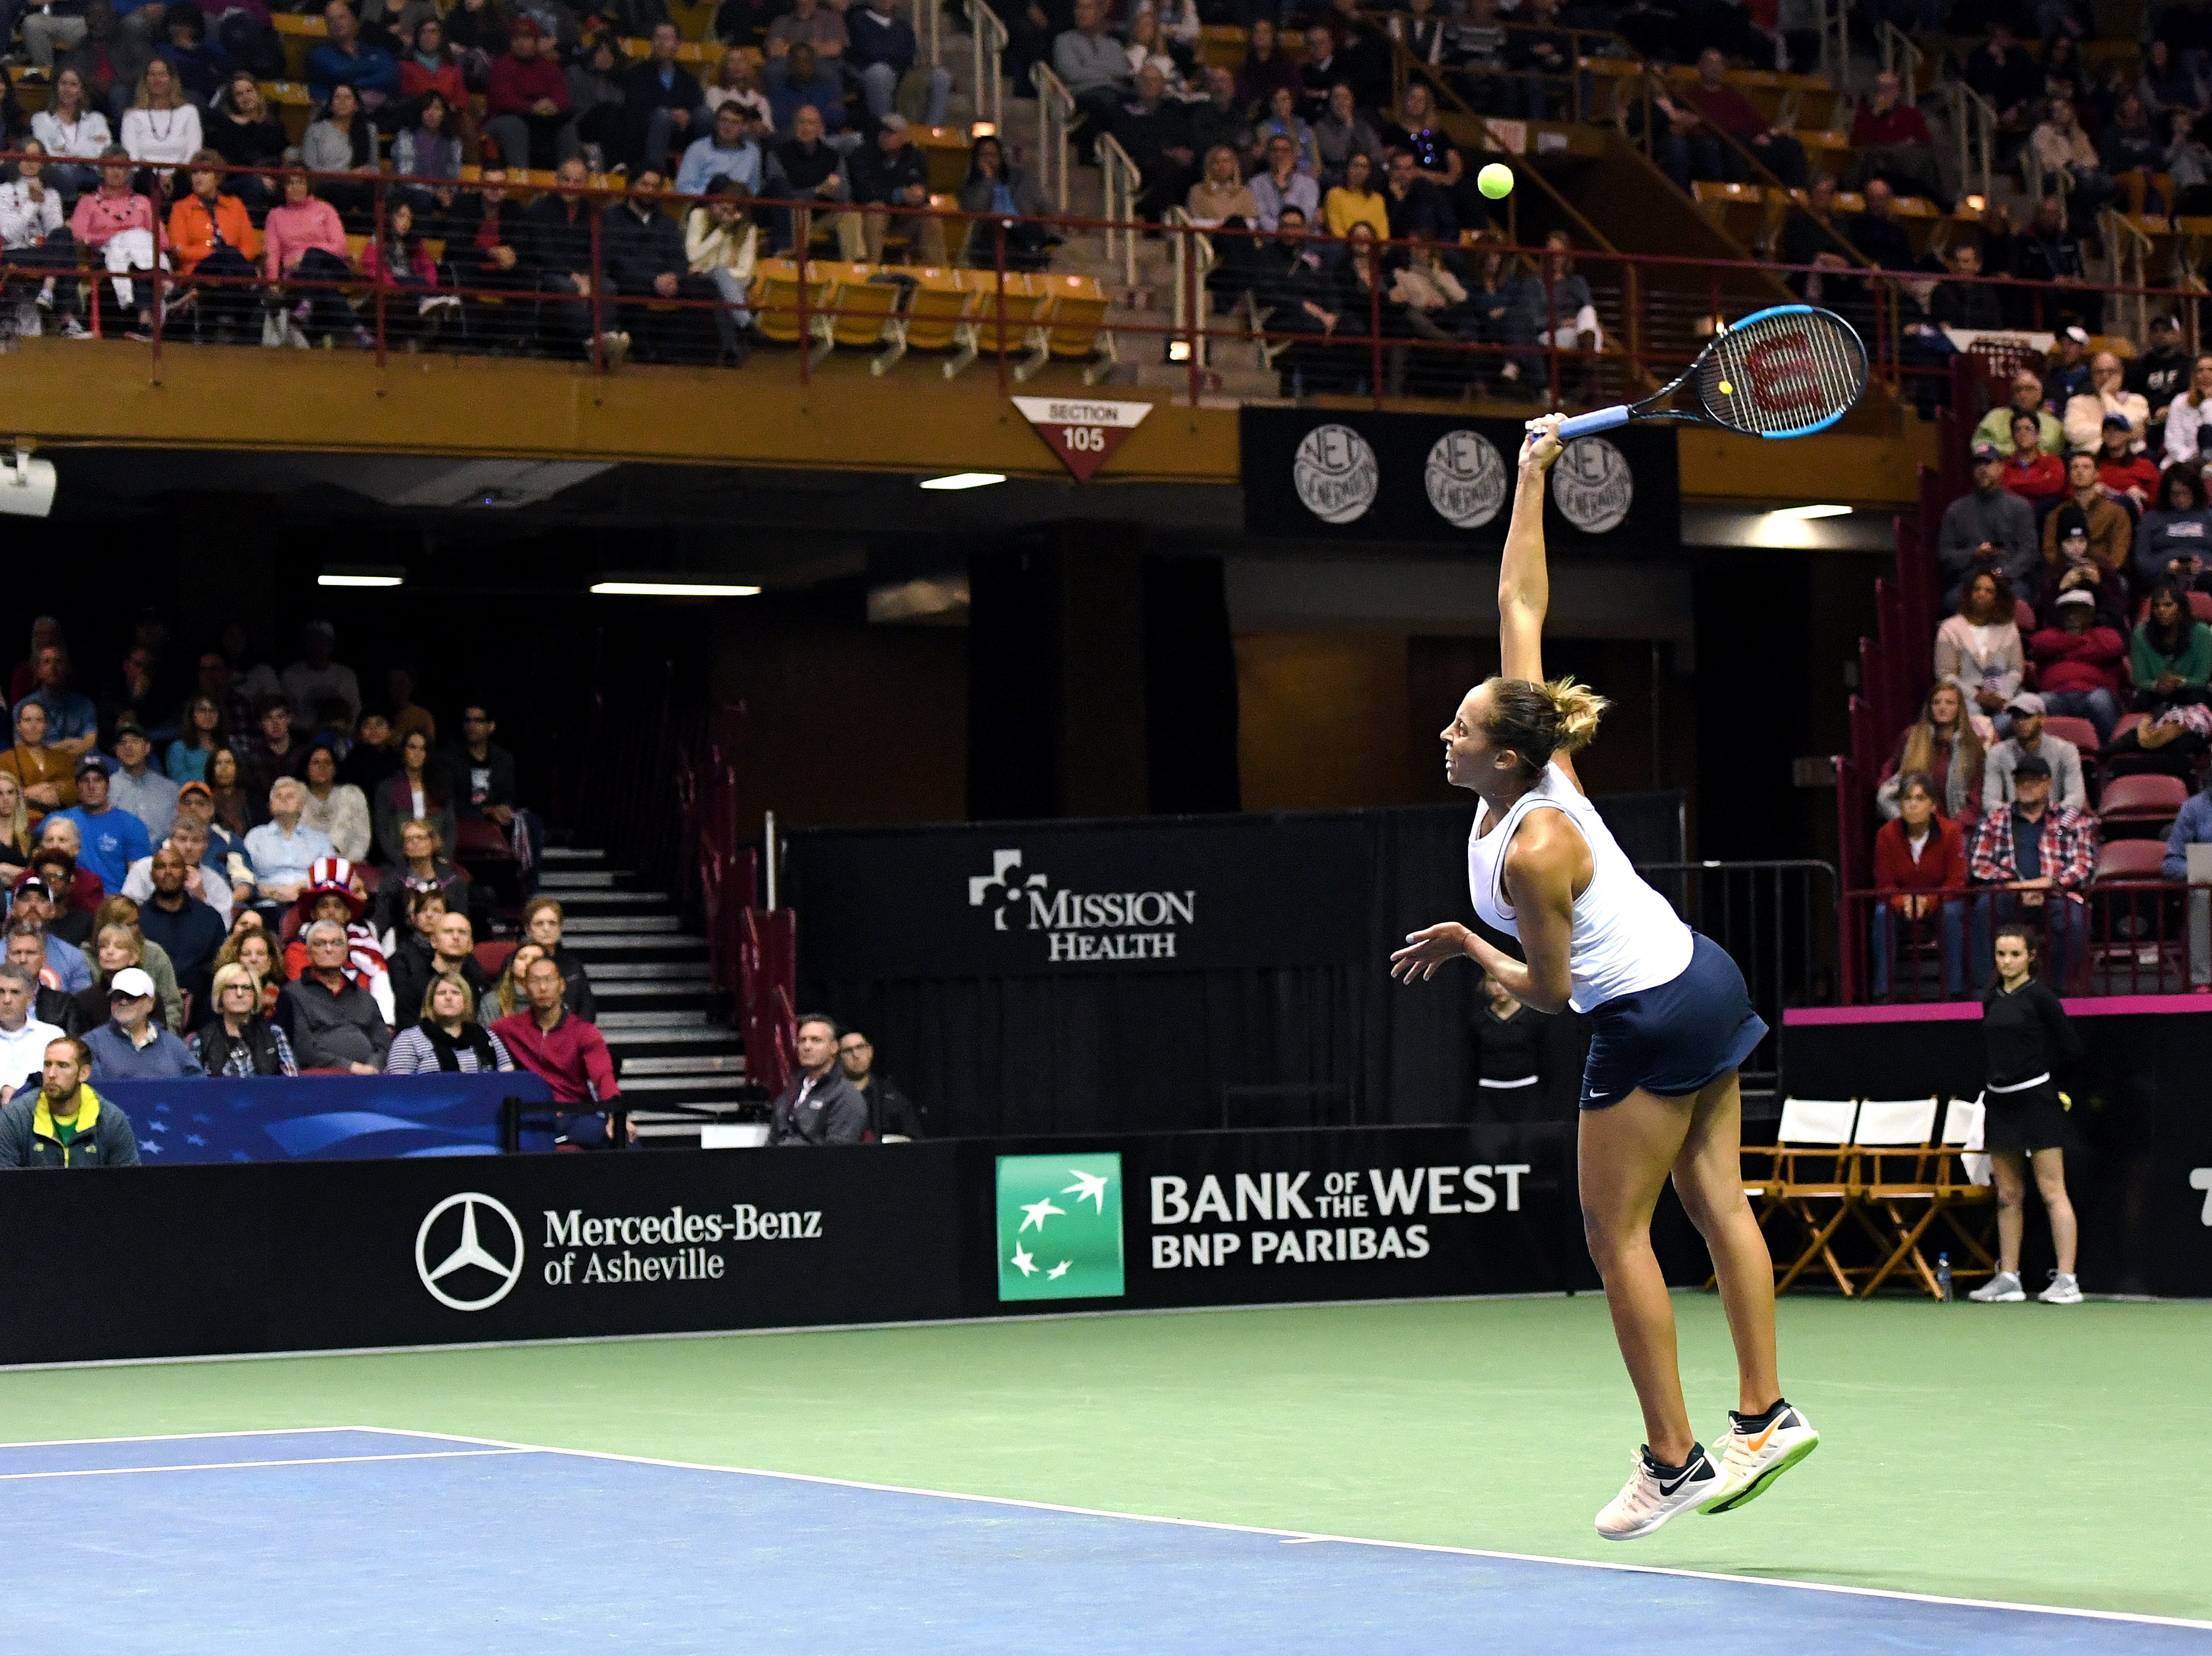 Team USA's Madison Keys serves the ball in her match against Australia's Ashleigh Barty in the first round of the Fed Cup at the U.S. Cellular Center on Feb. 10, 2019.